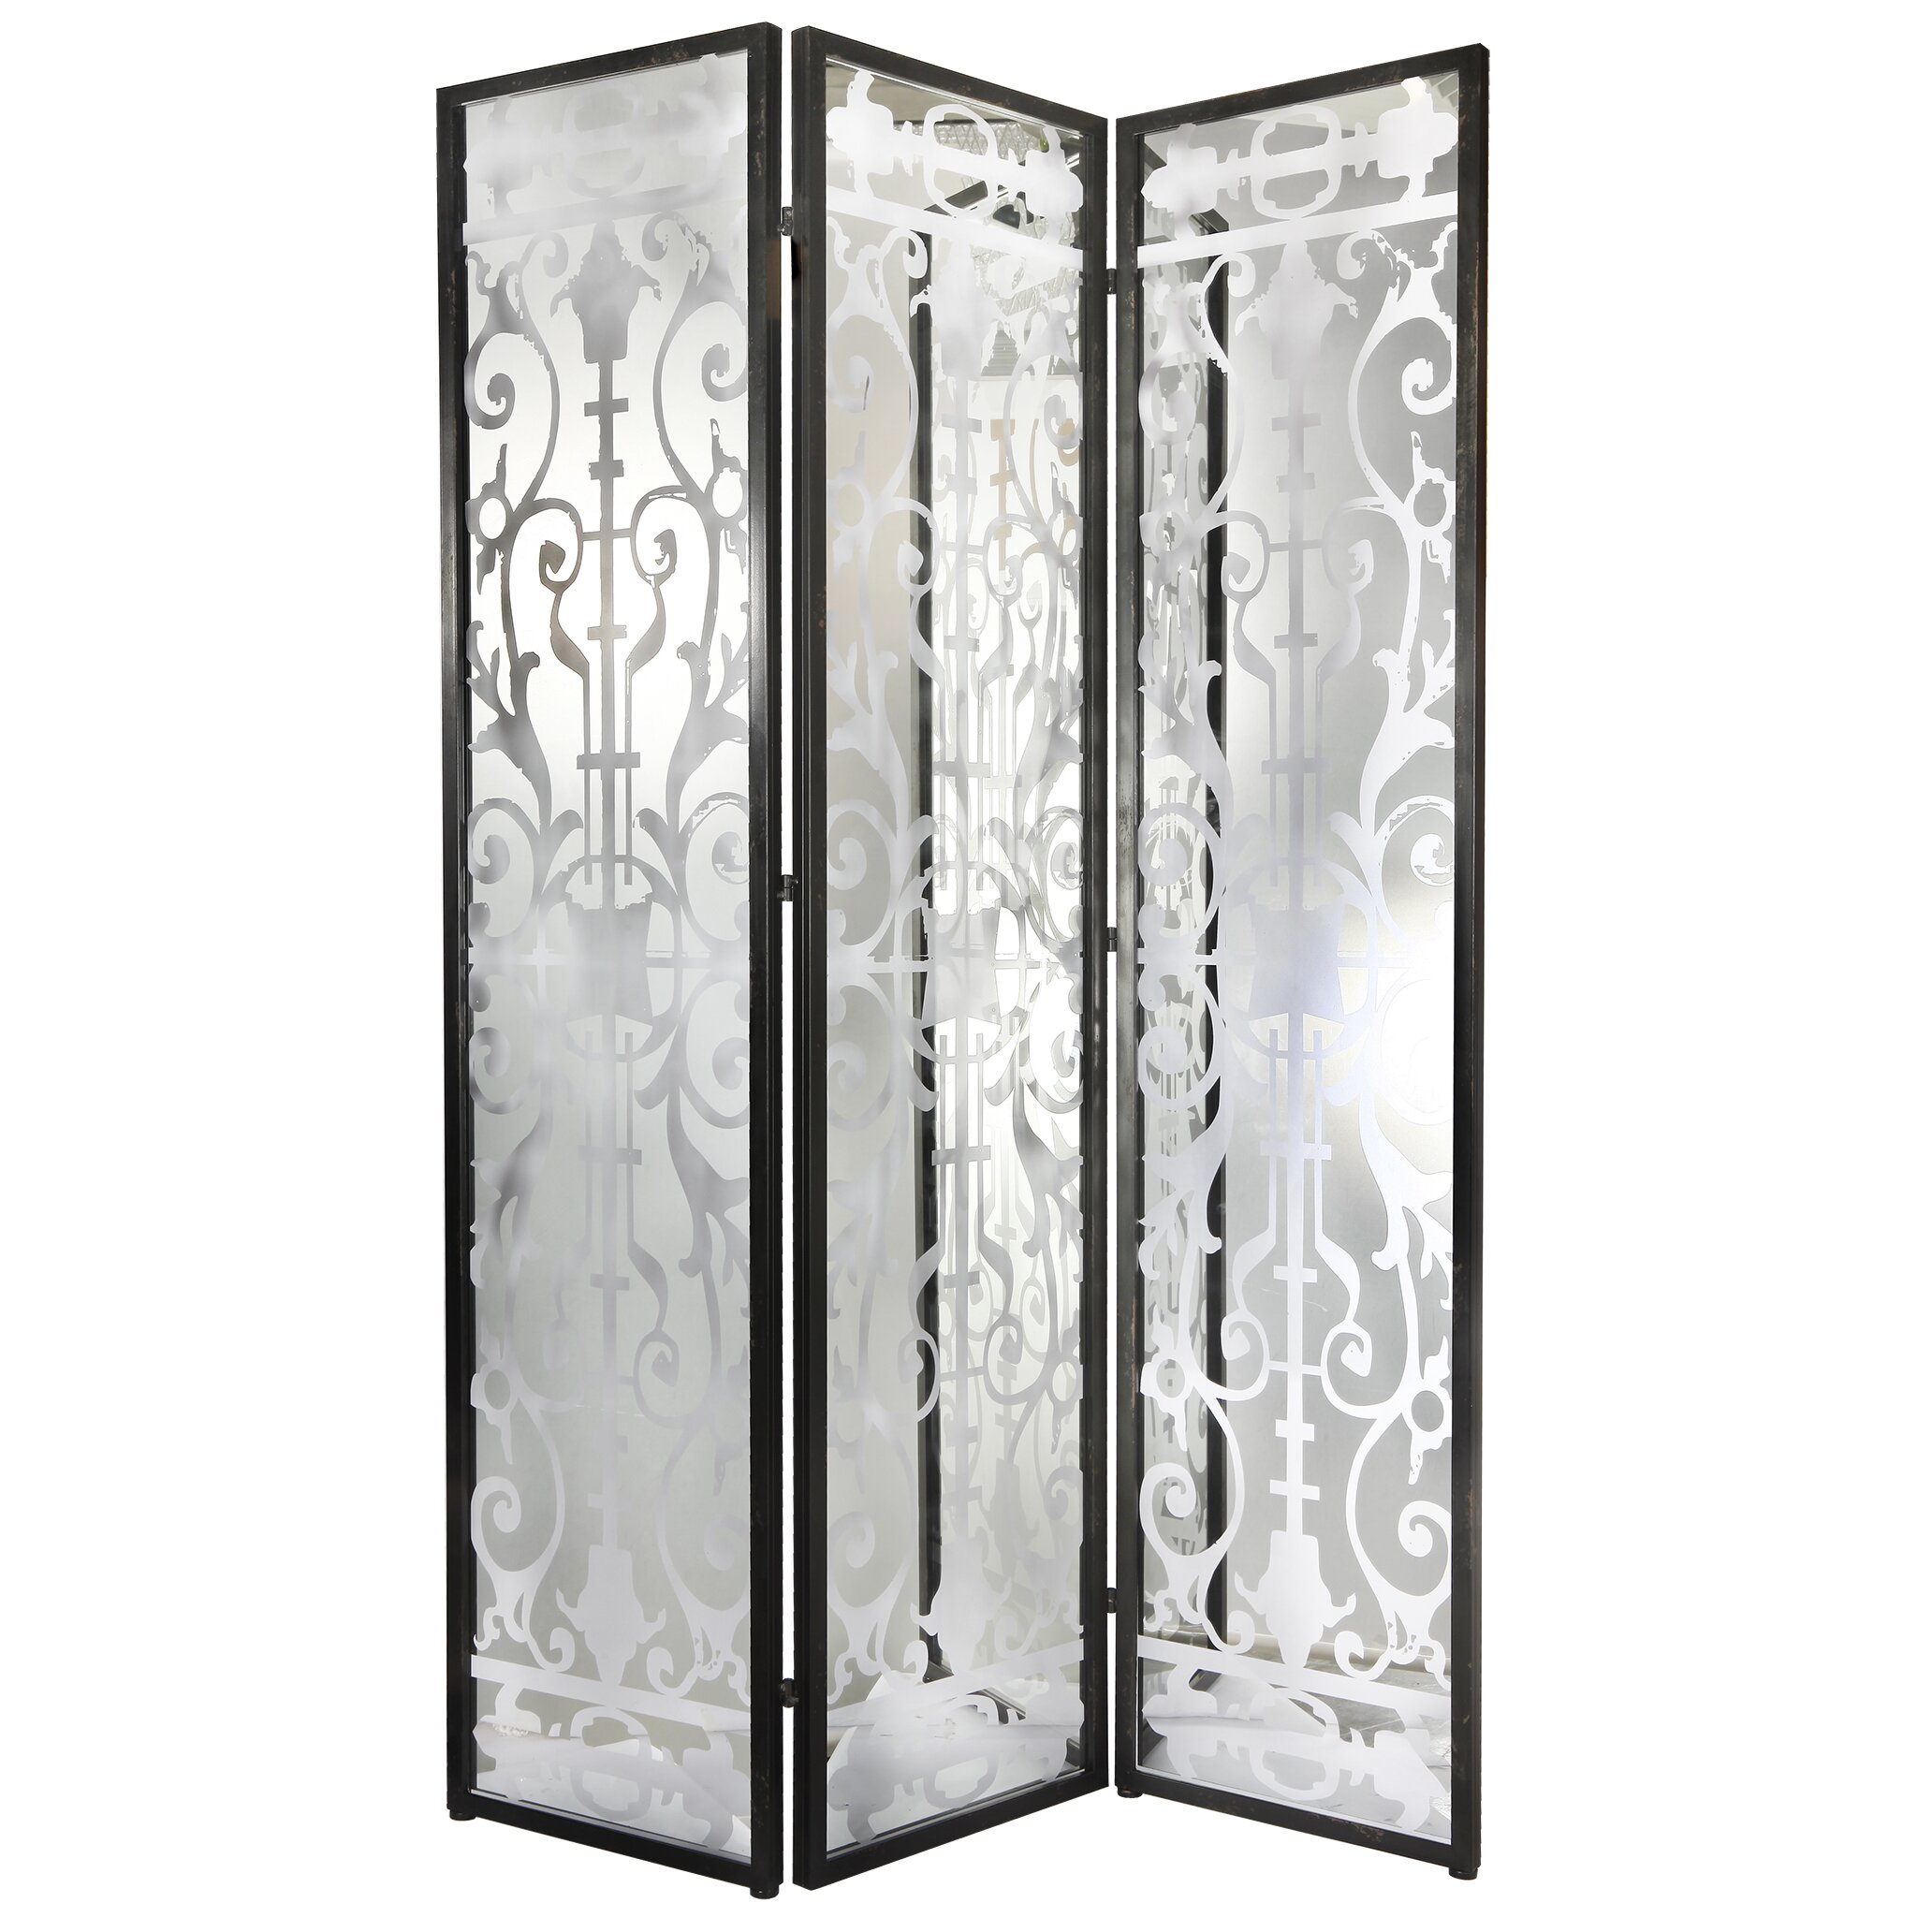 Latitude run aline 78 x 54 decorative screen glass iron for Painted screens room dividers